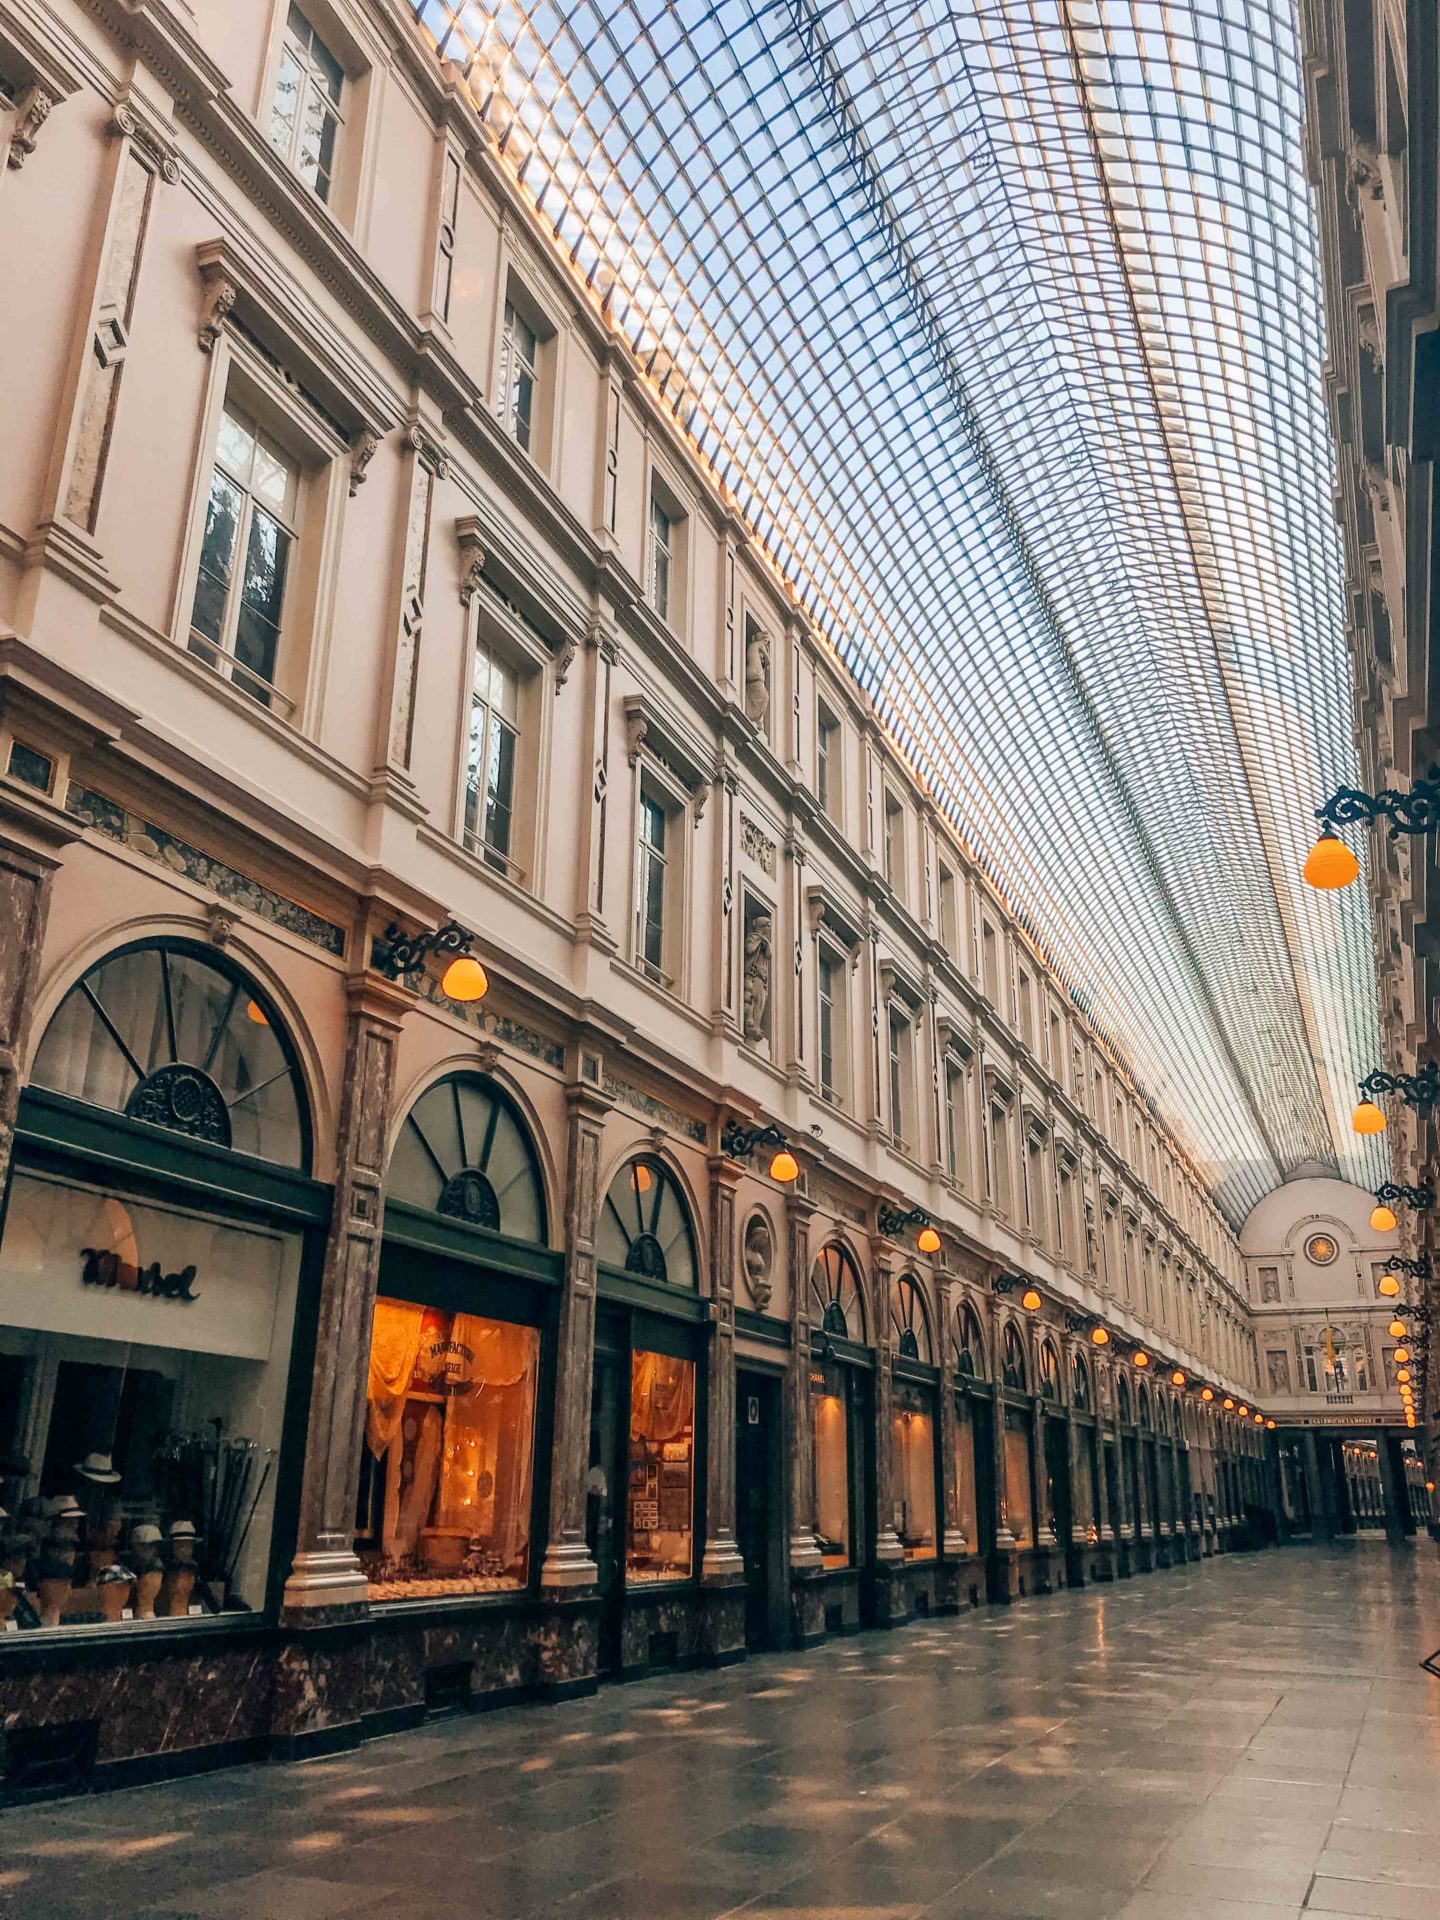 The Galeries Royales Saint Hubert, a must-see during 24h in Brussels